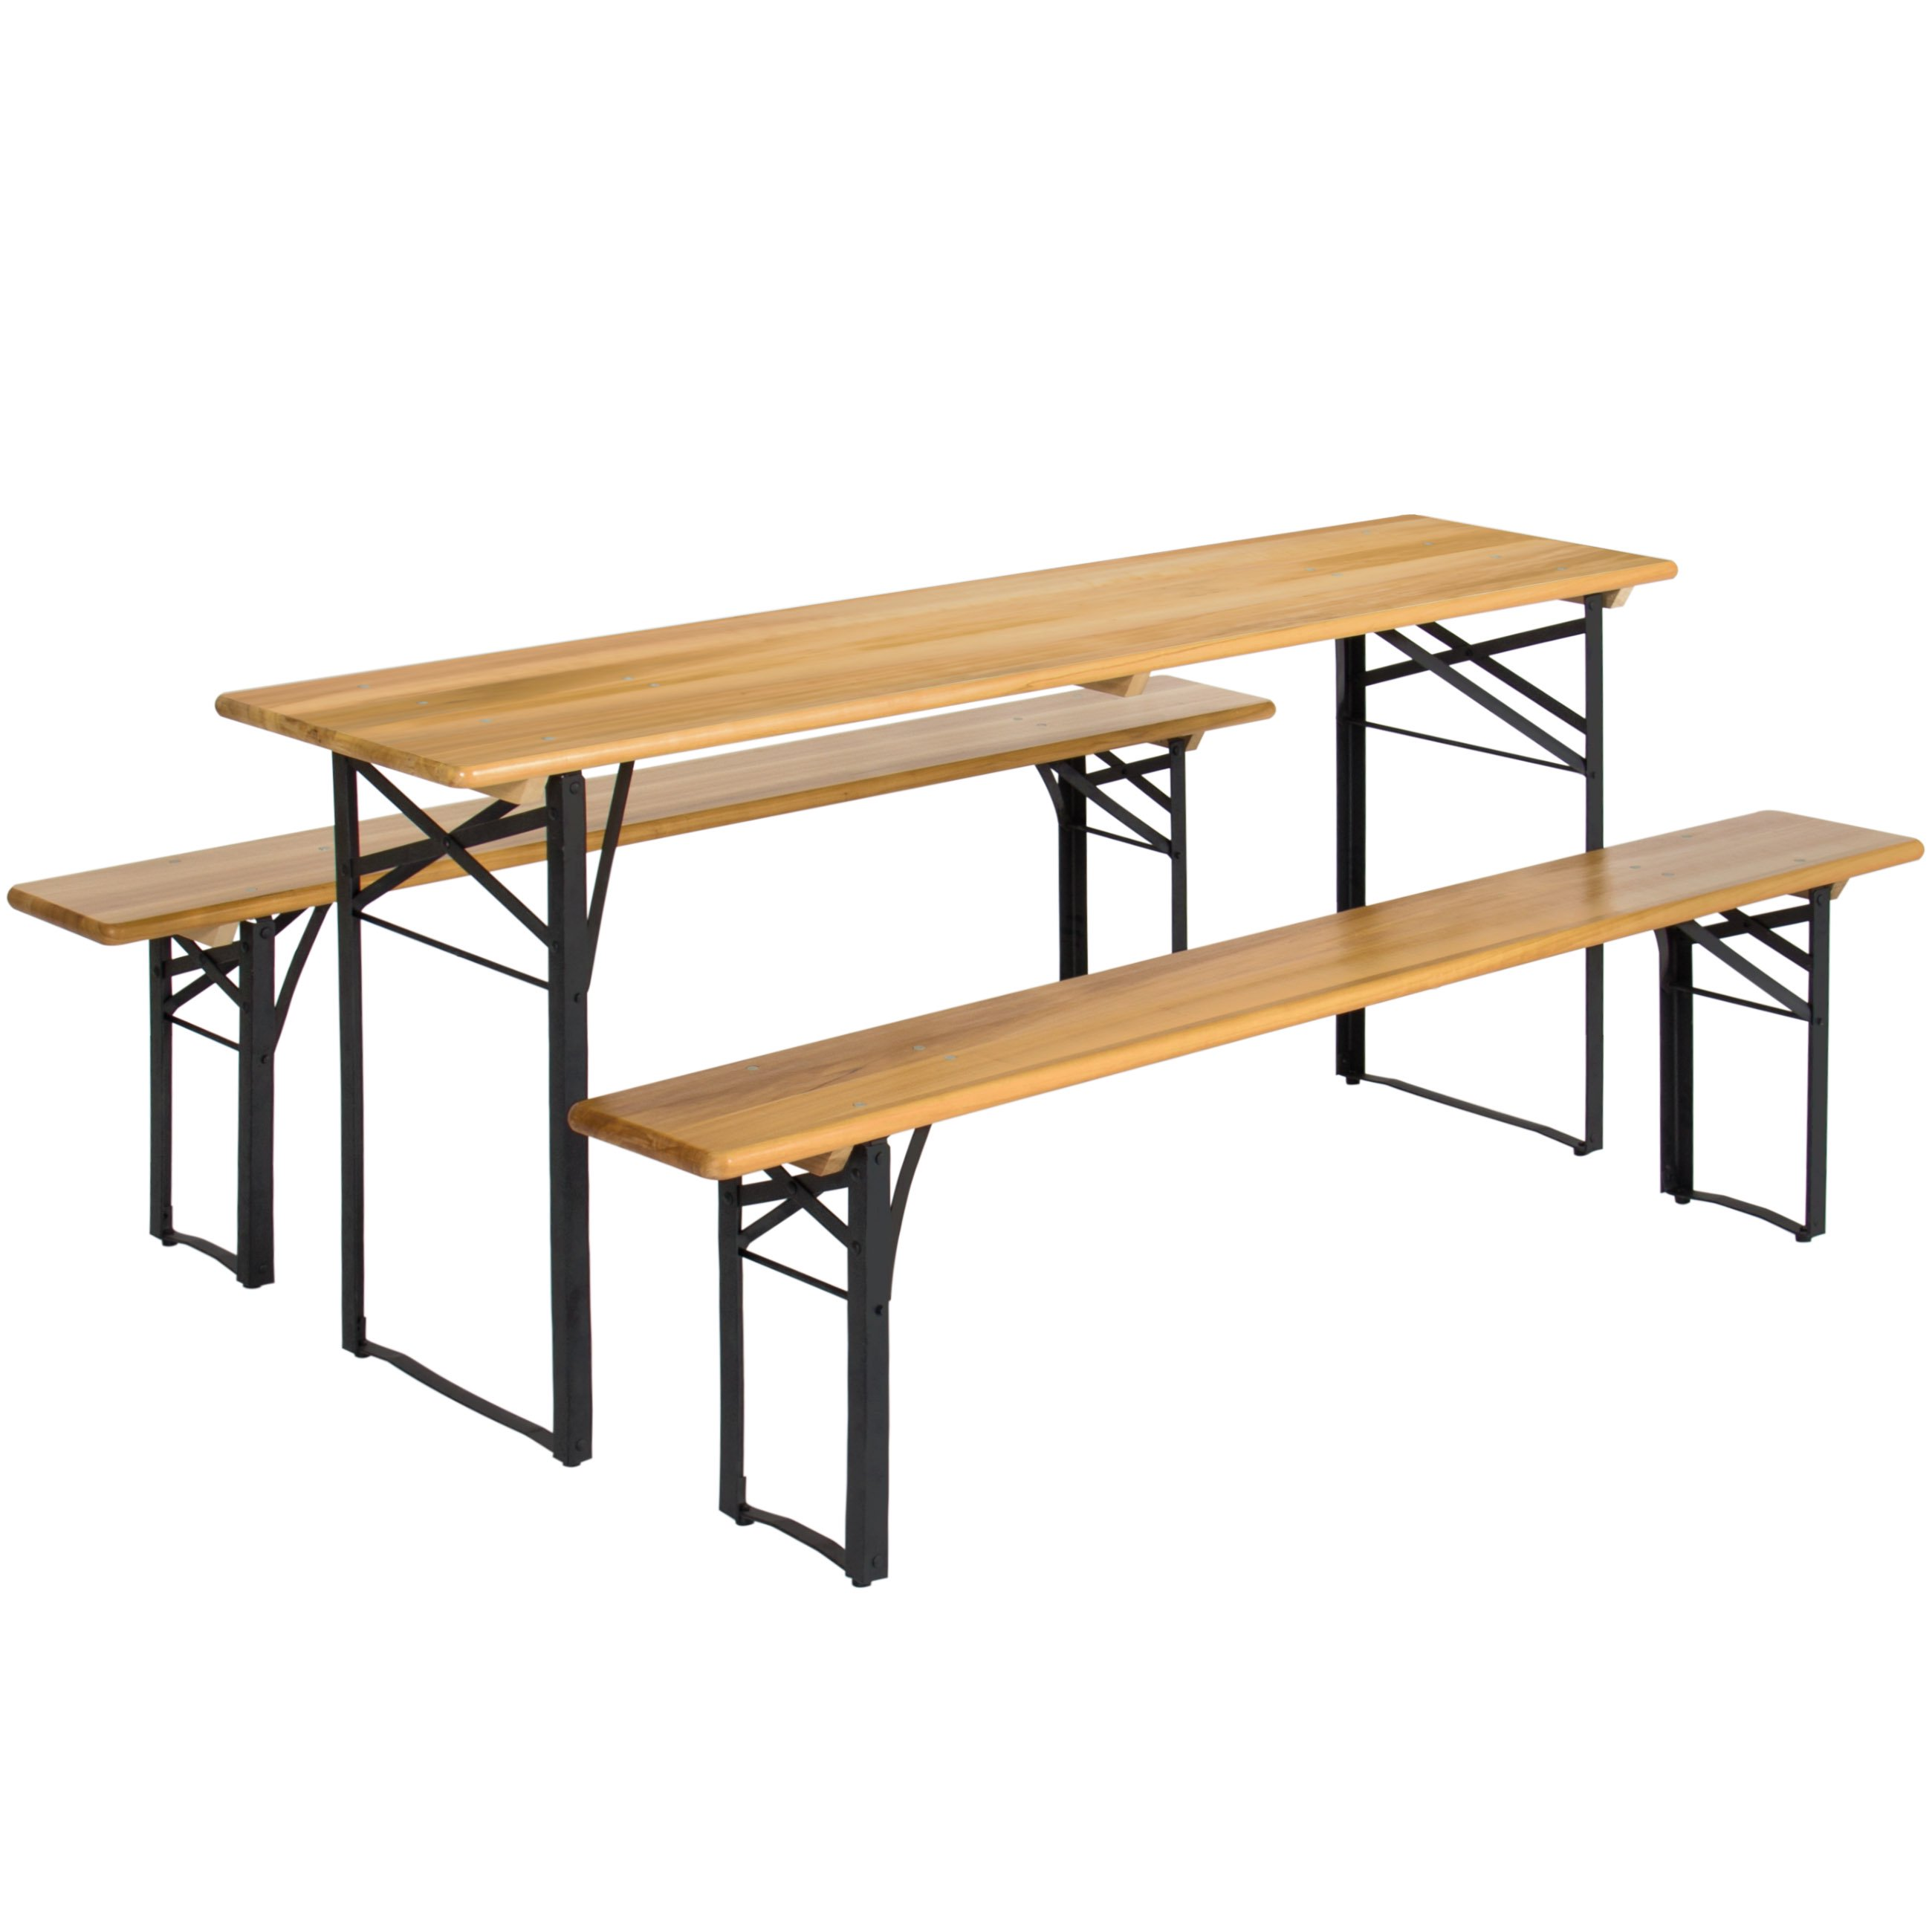 Best Choice Products Portable 3 Piece Folding Picnic Table Set W/ Wooden Tabletop  sc 1 st  Walmart & Best Choice Products Portable 3 Piece Folding Picnic Table Set W ...